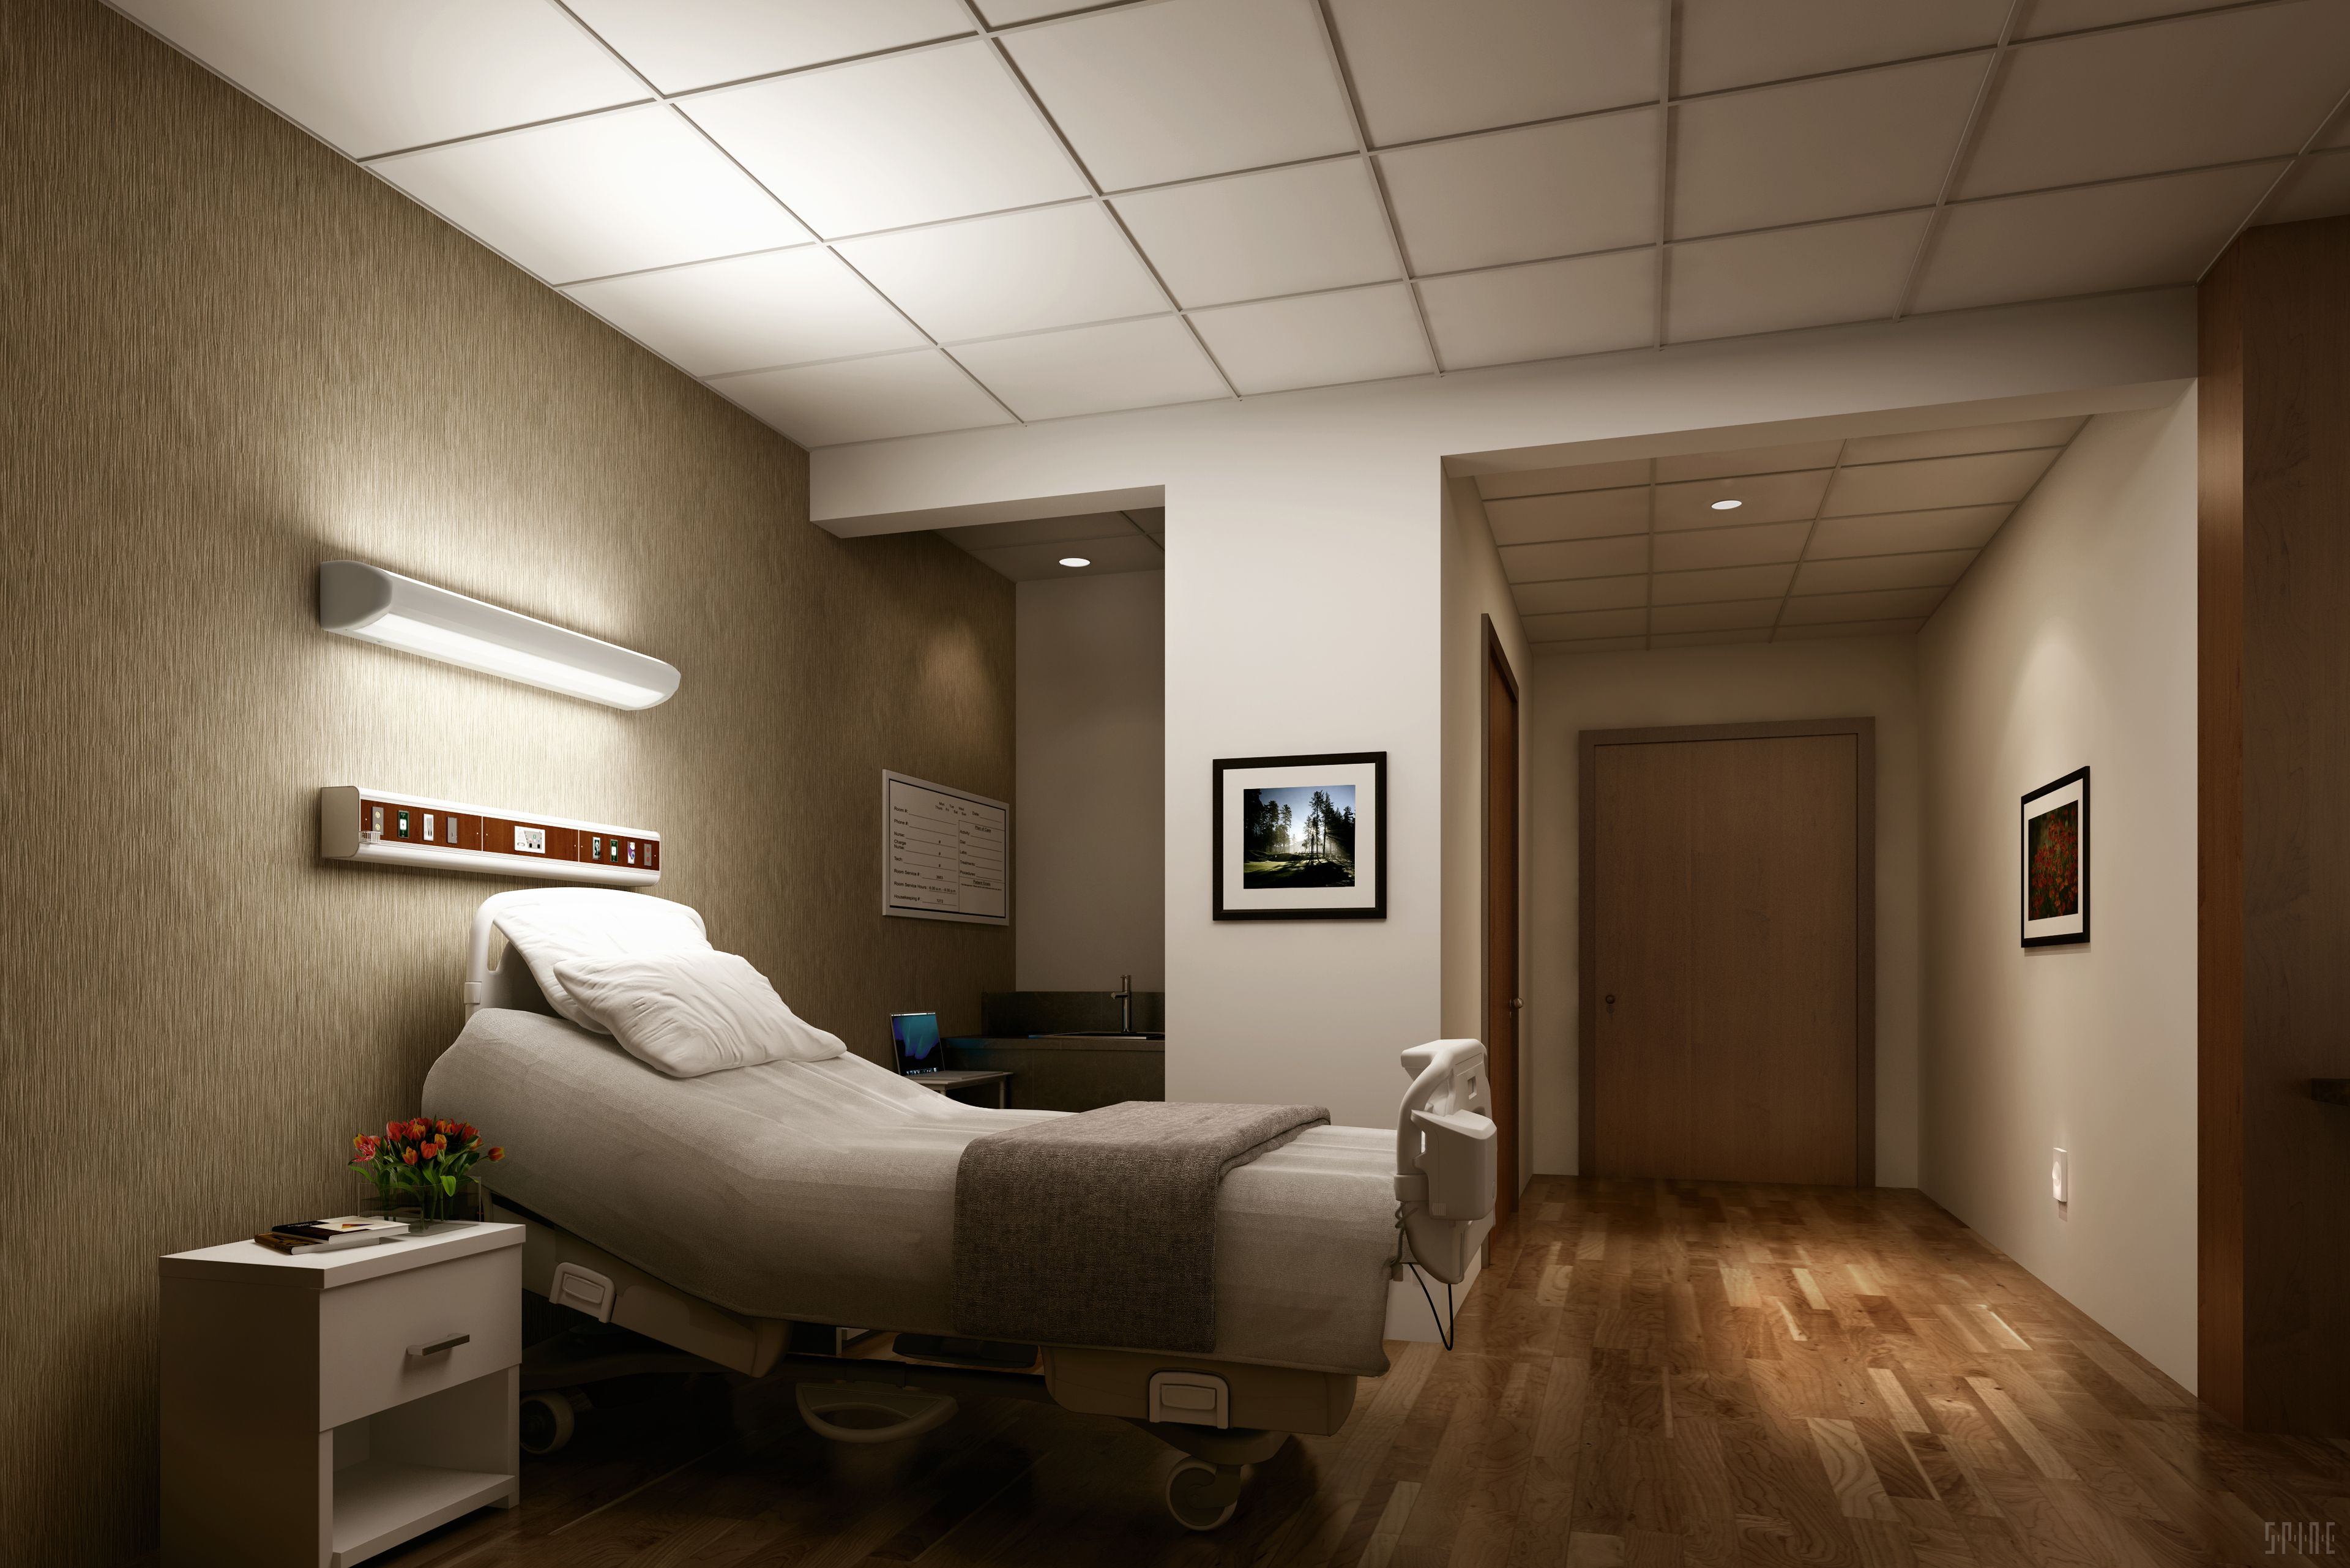 Patient bedside LED wall mounted light fixtures provide